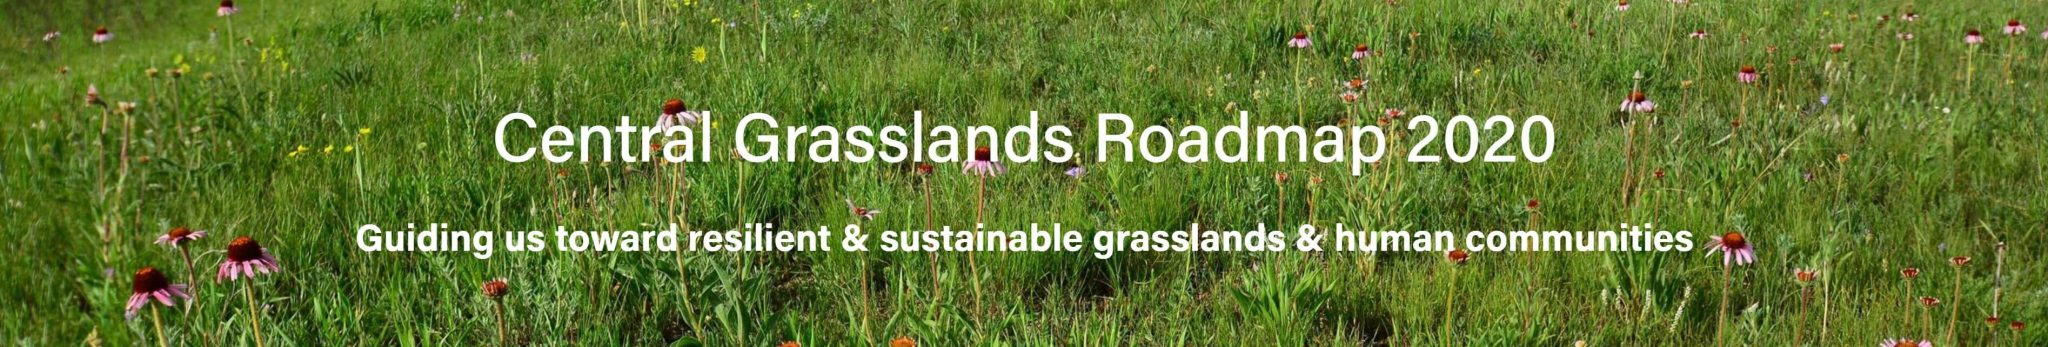 Header Design for Central Grasslands Roadmap 2020